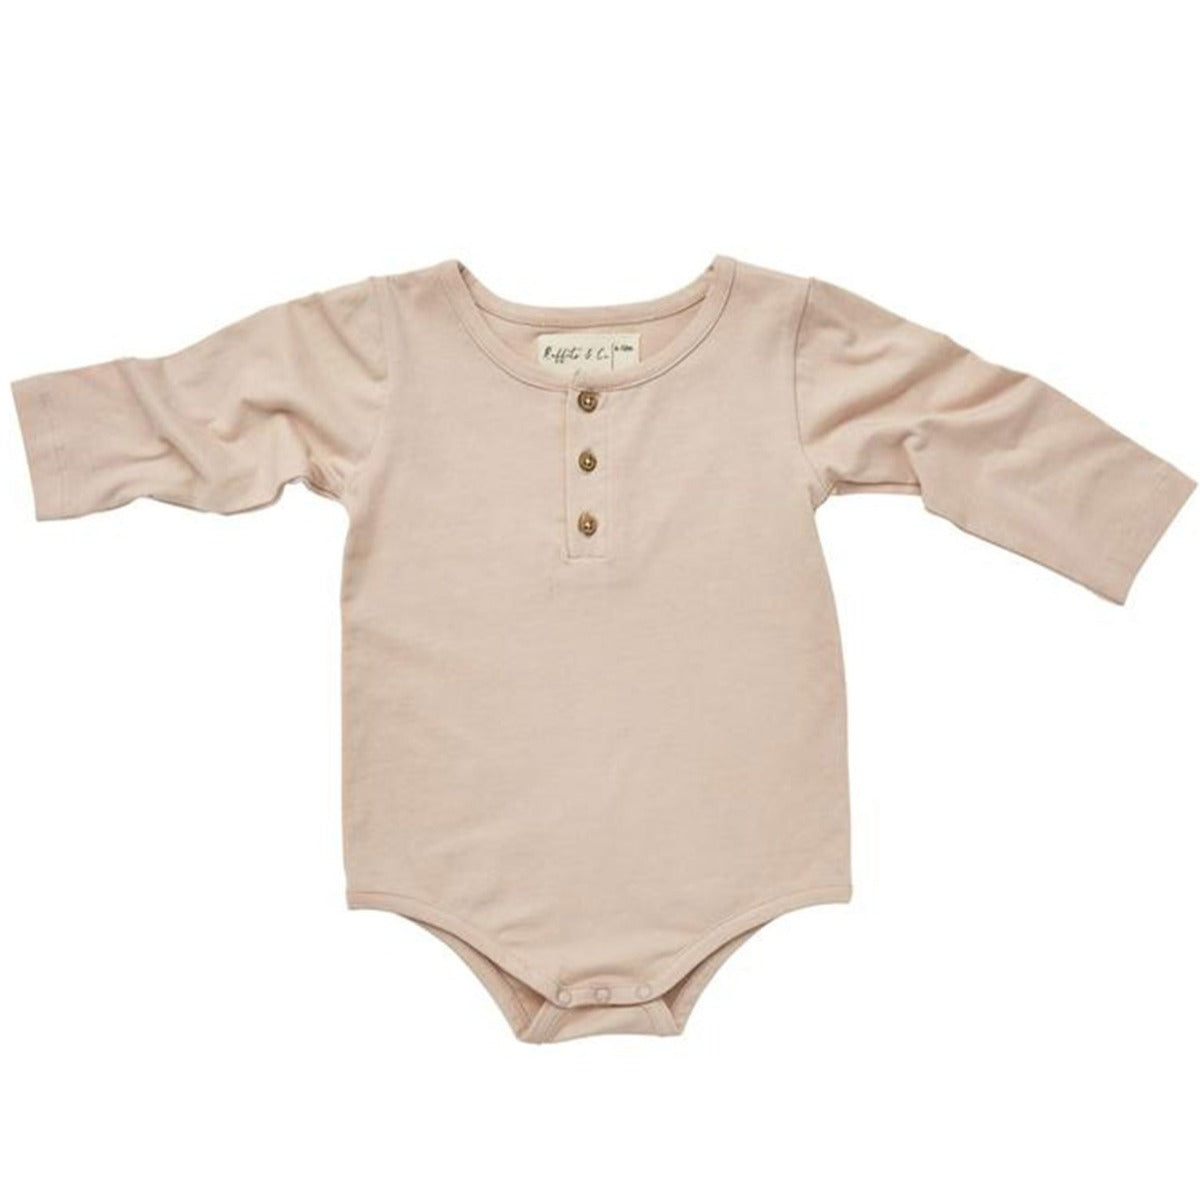 US Stockist of Ruffets & Co Blush Pink Bodysuit/Onesie